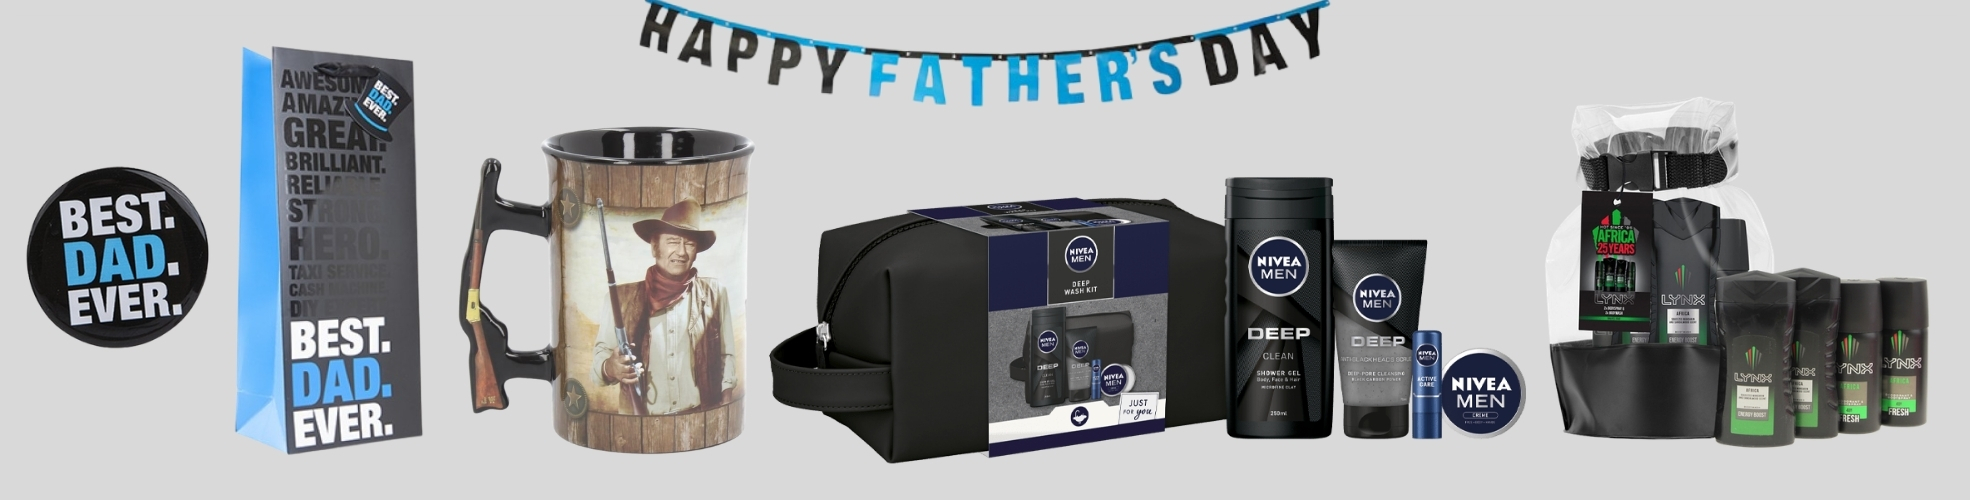 Wholesale Father's Day Gifts